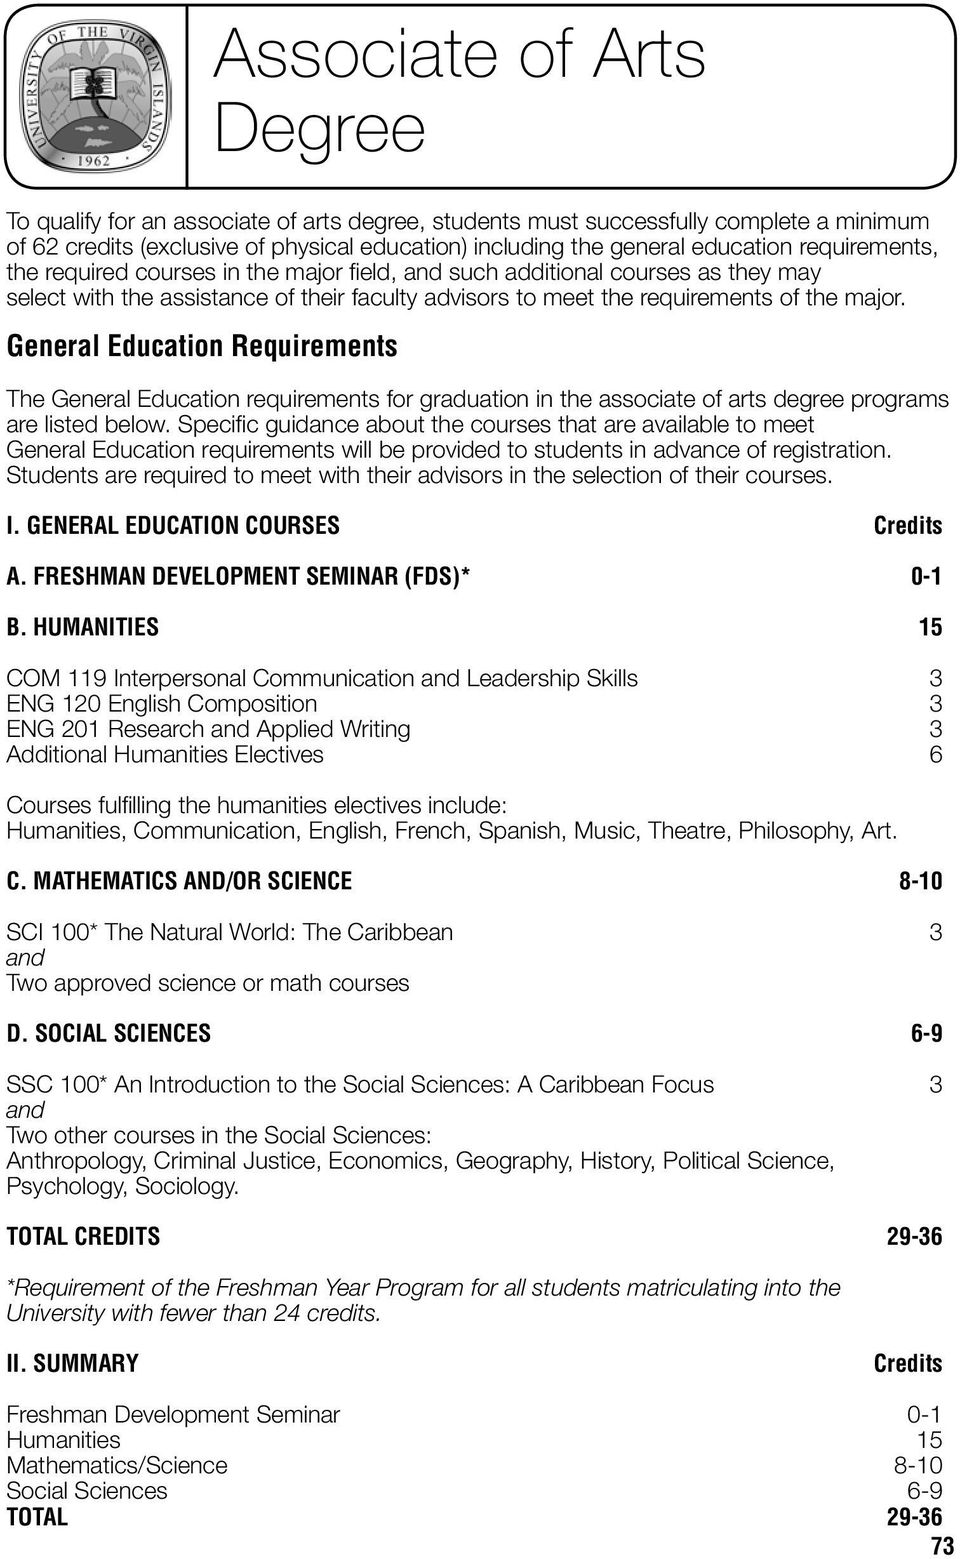 General Education Requirements Associate of Arts Degree The General Education requirements for graduation in the associate of arts degree programs are listed below.